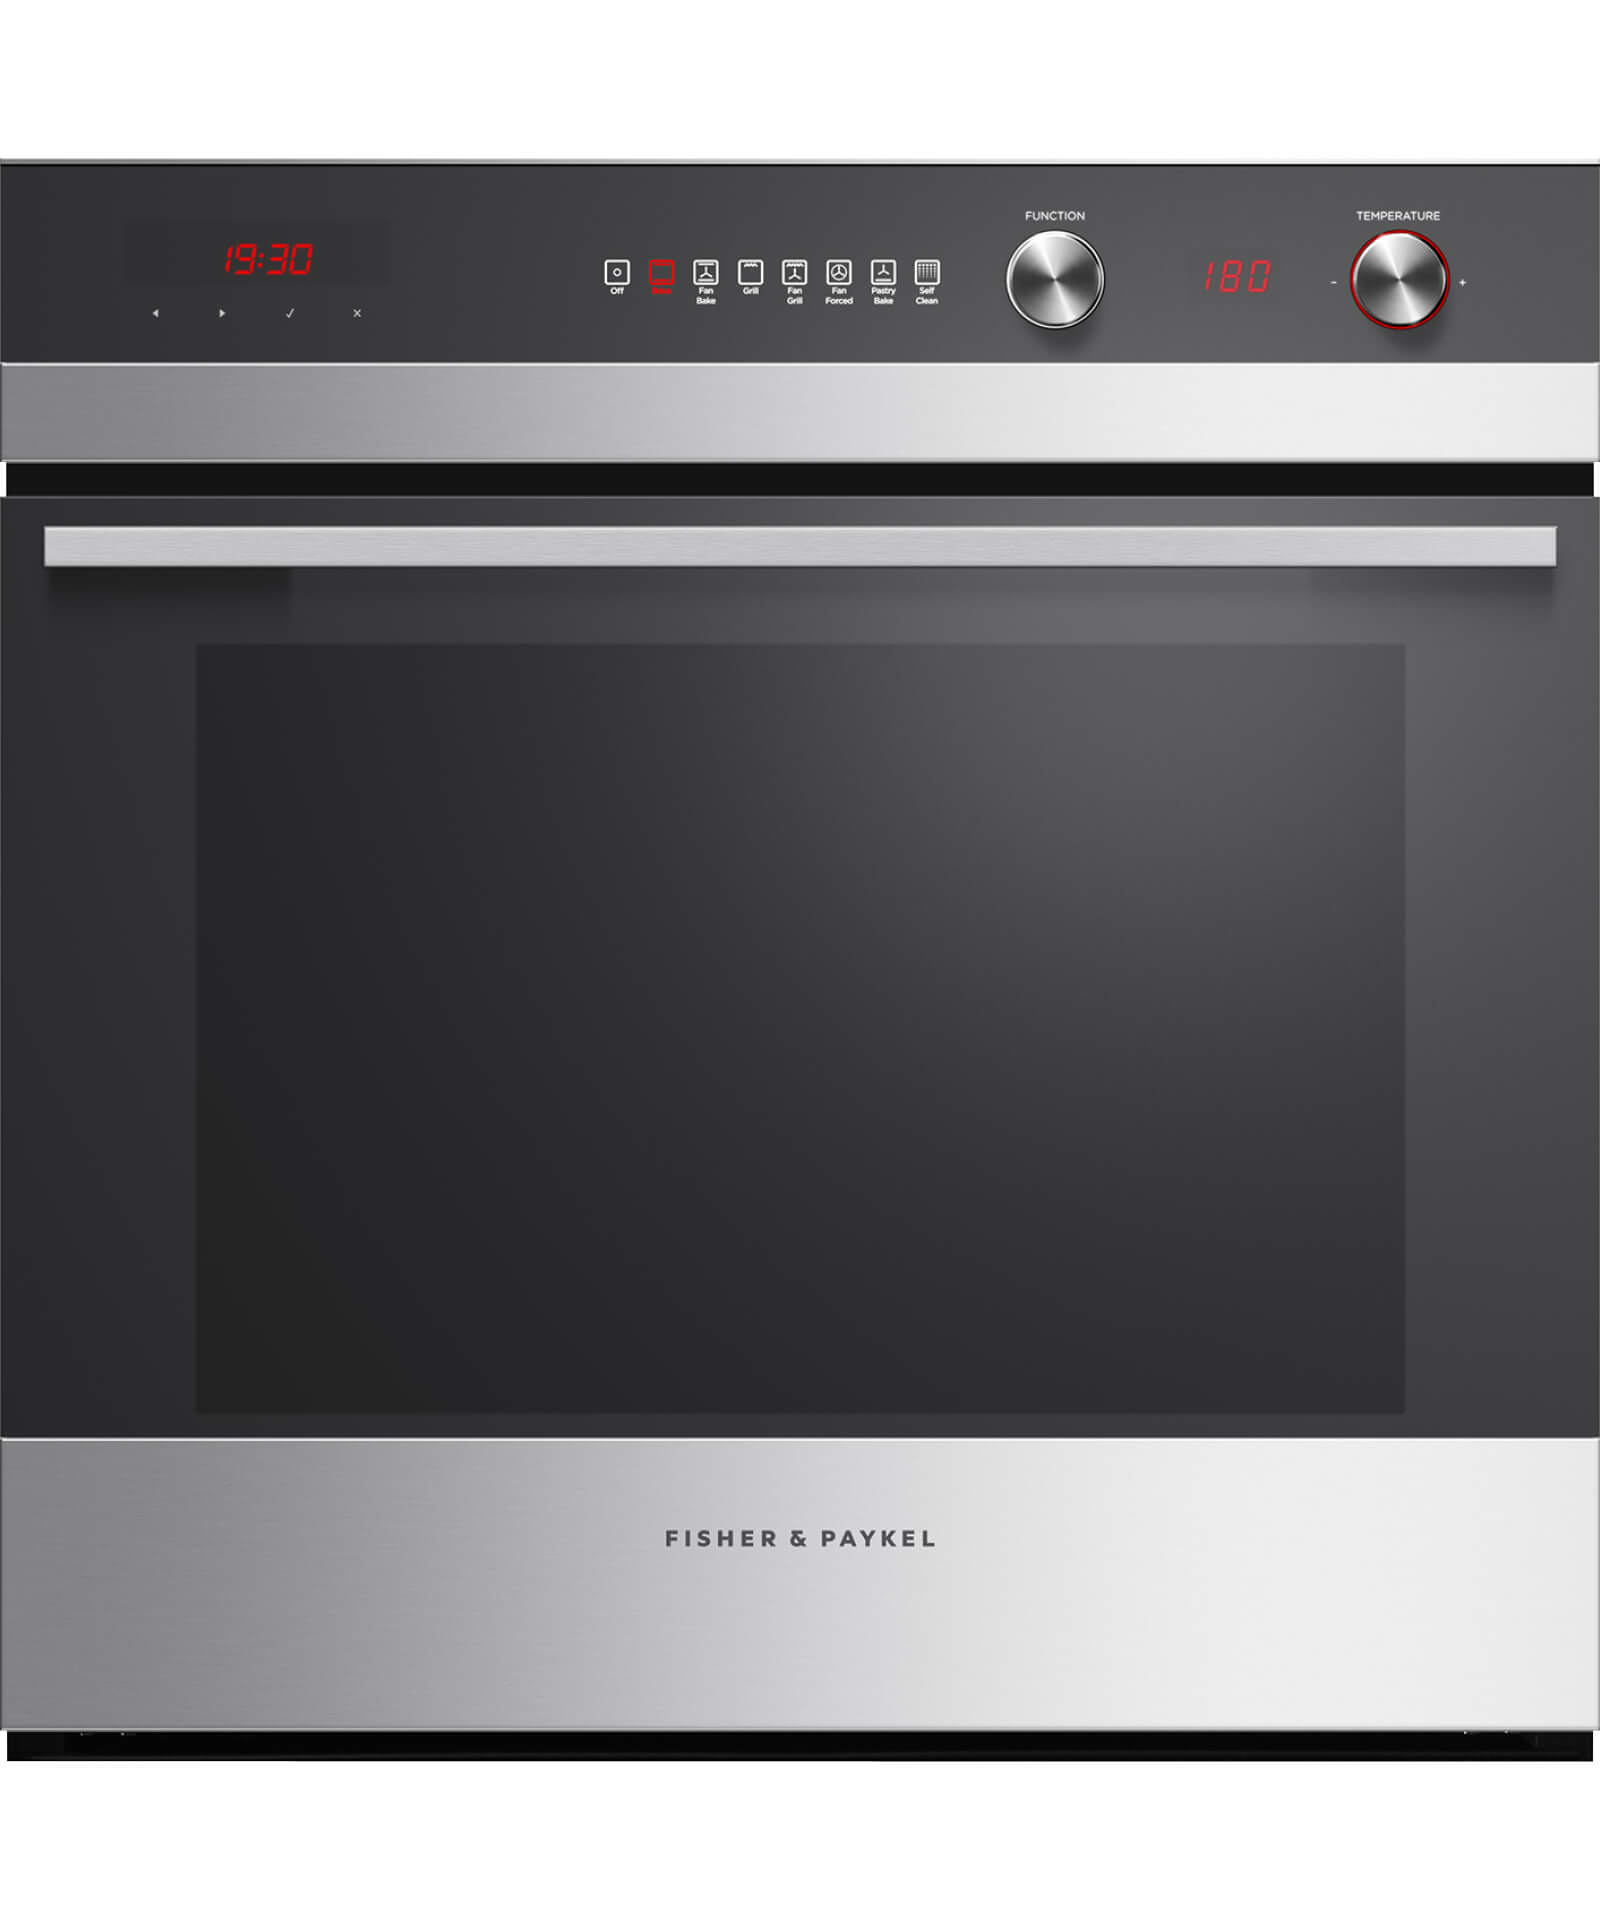 fisher and paykel quicksmart front loader instructions